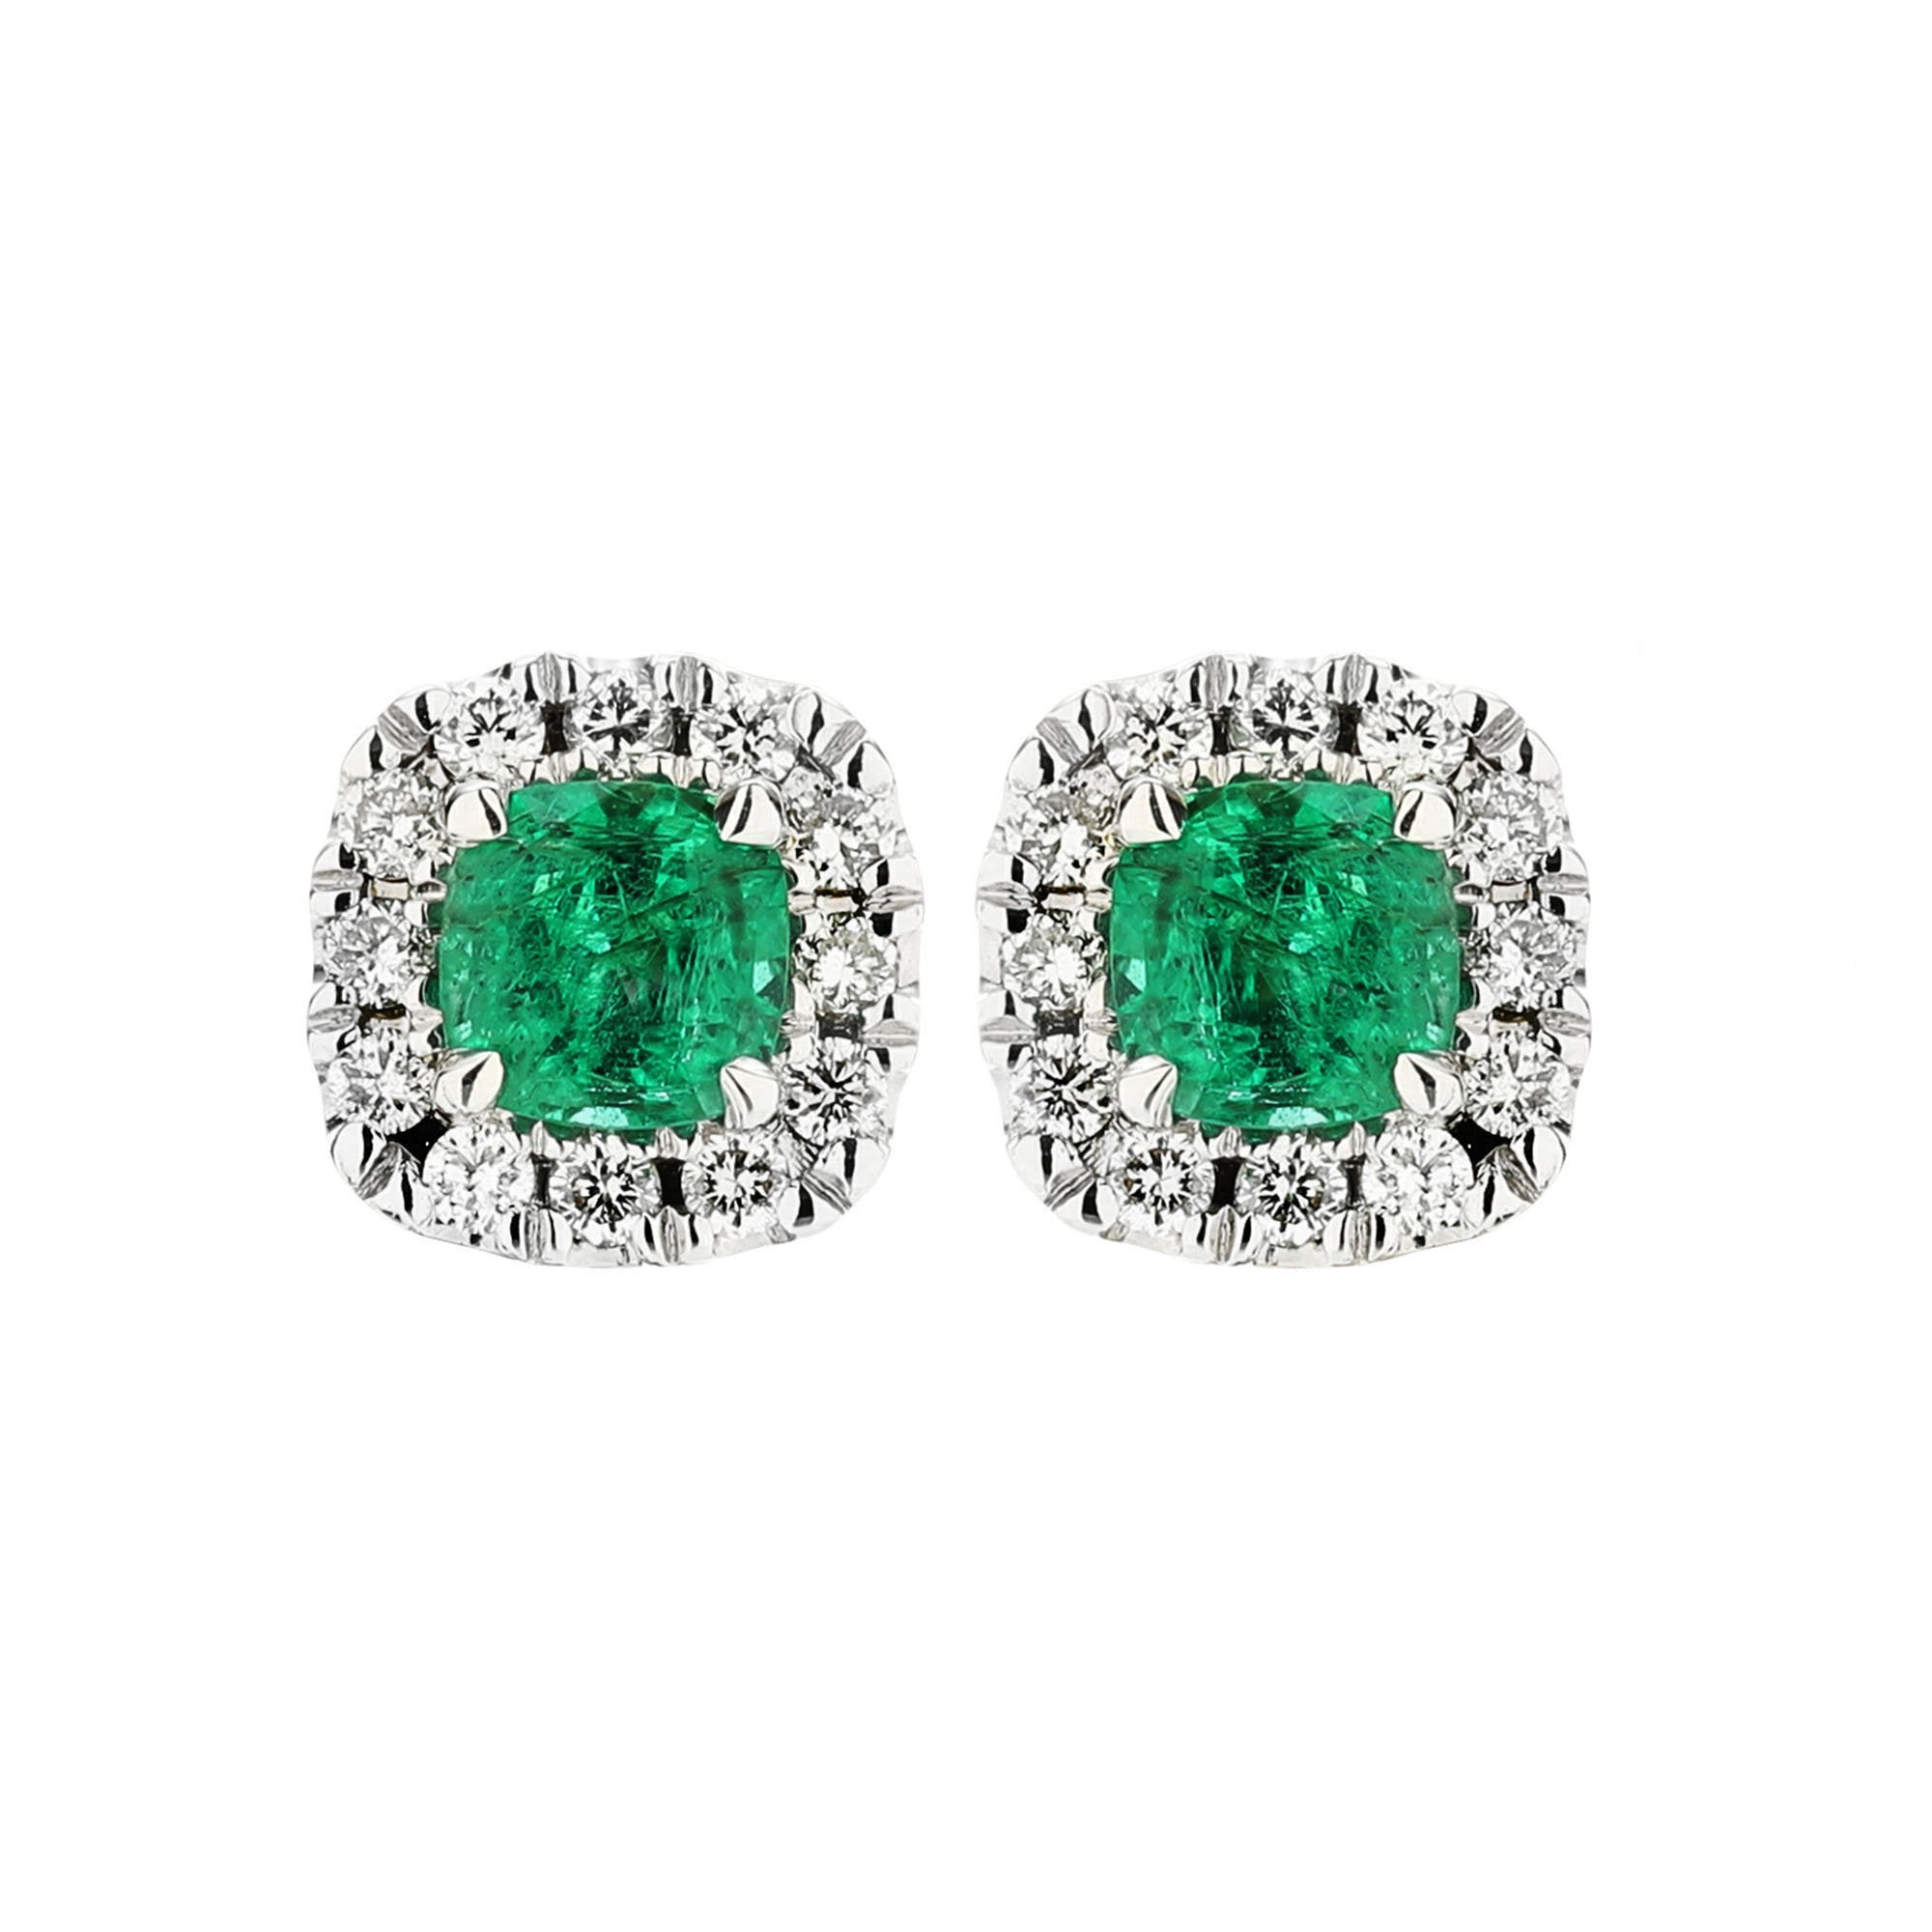 Sabel Collection 14k White Gold Cushion Emerald And Diamond Earrings